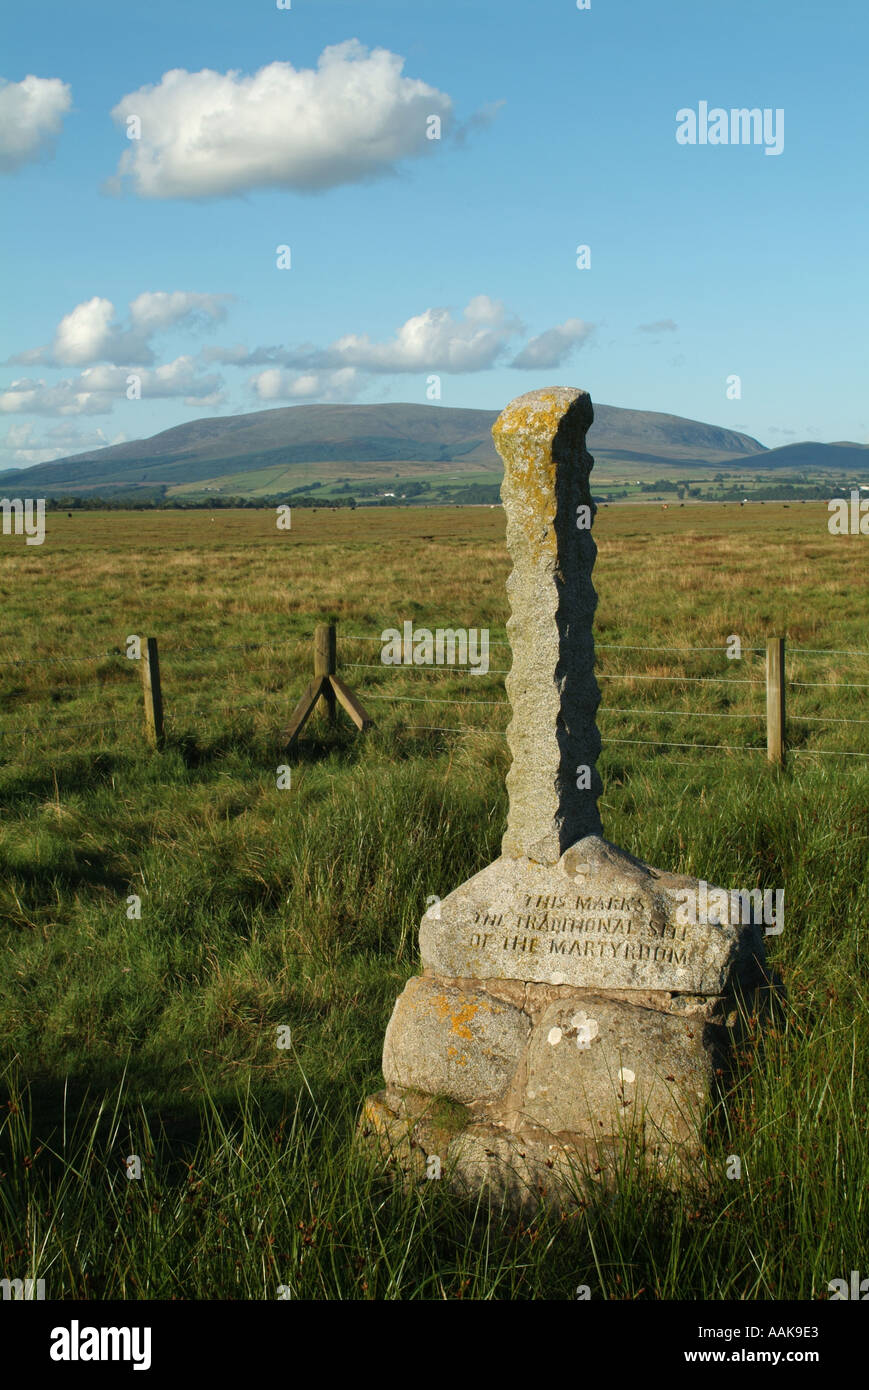 Monument to the Wigtown martyrs, Wigtown, Dumfries and Galloway, Scotland, UK. - Stock Image